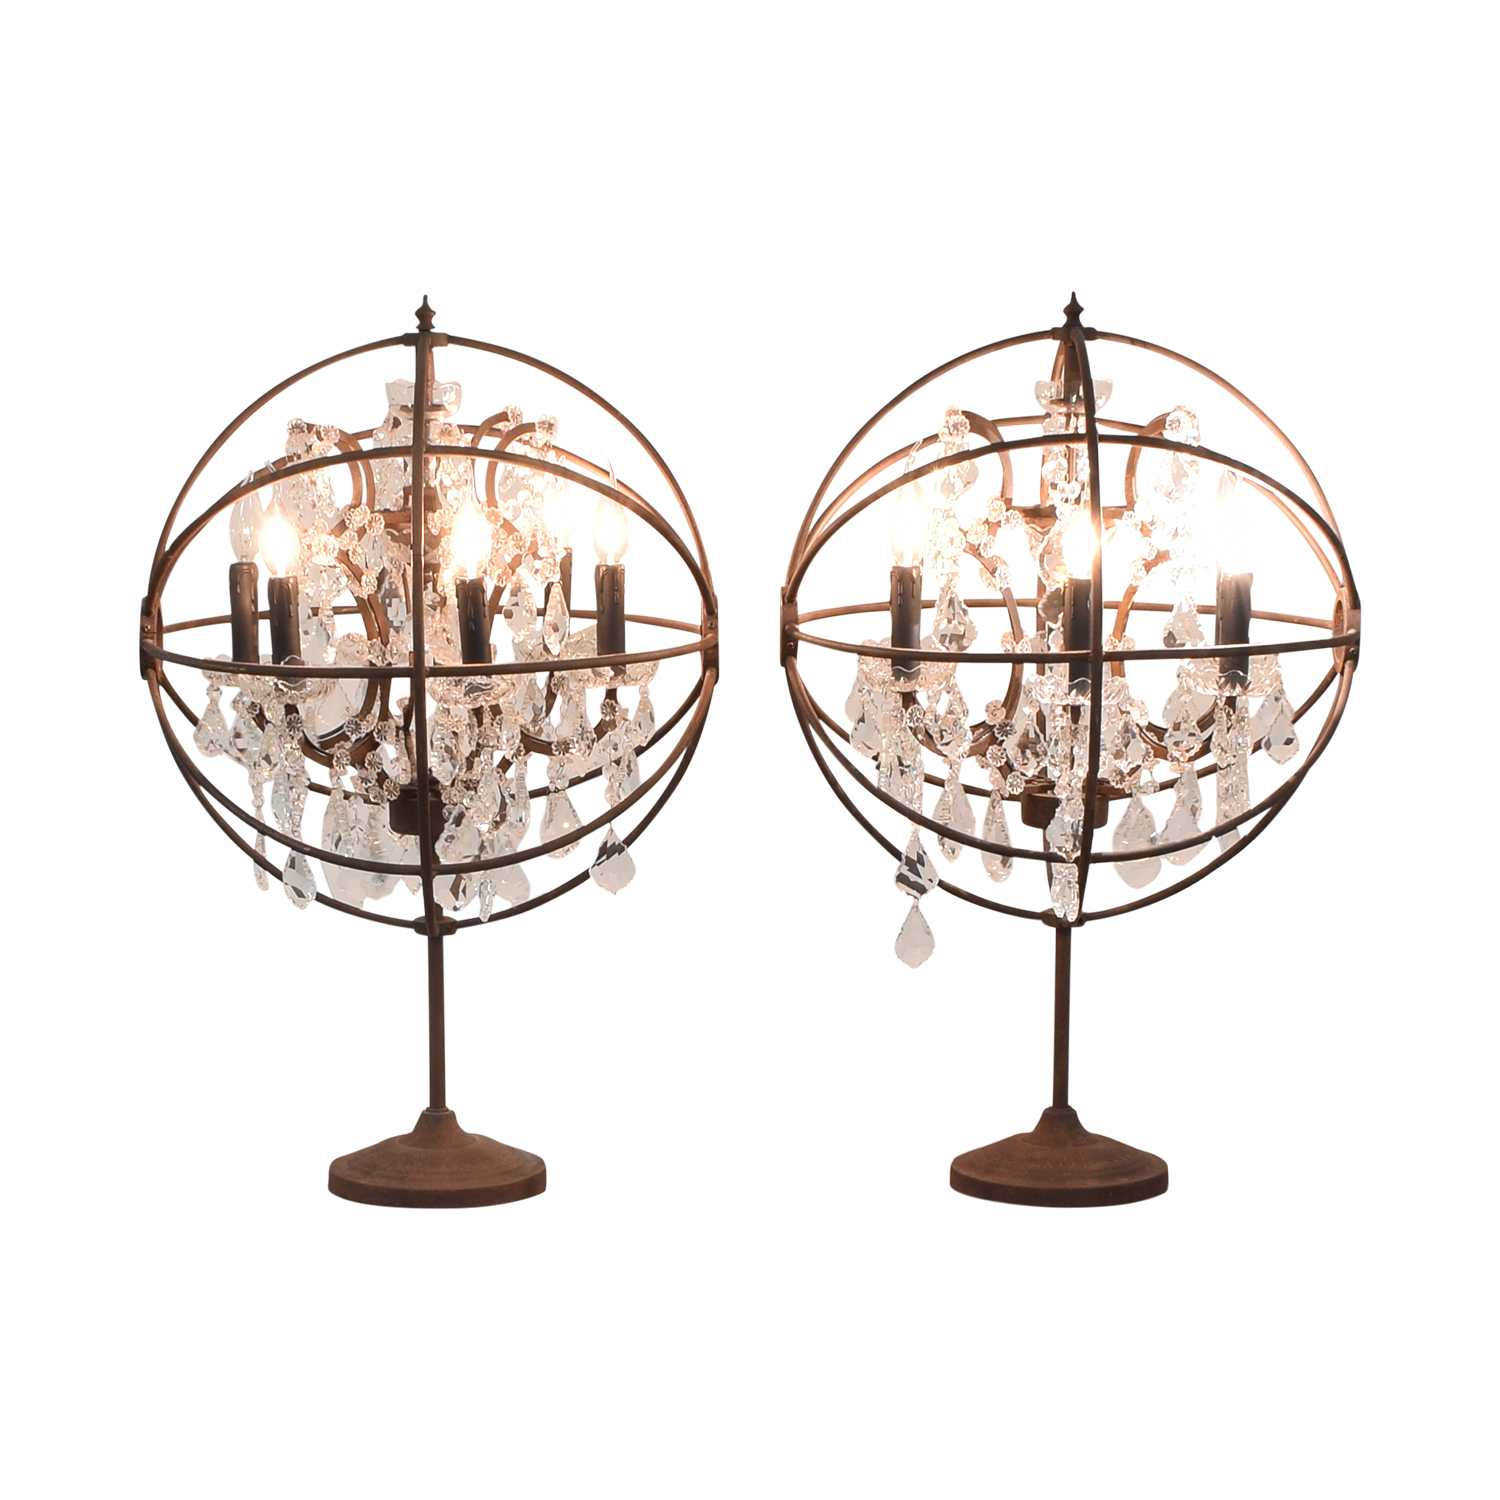 Restoration Hardware Restoration Hardware Orb Crystal Table Lamps second hand